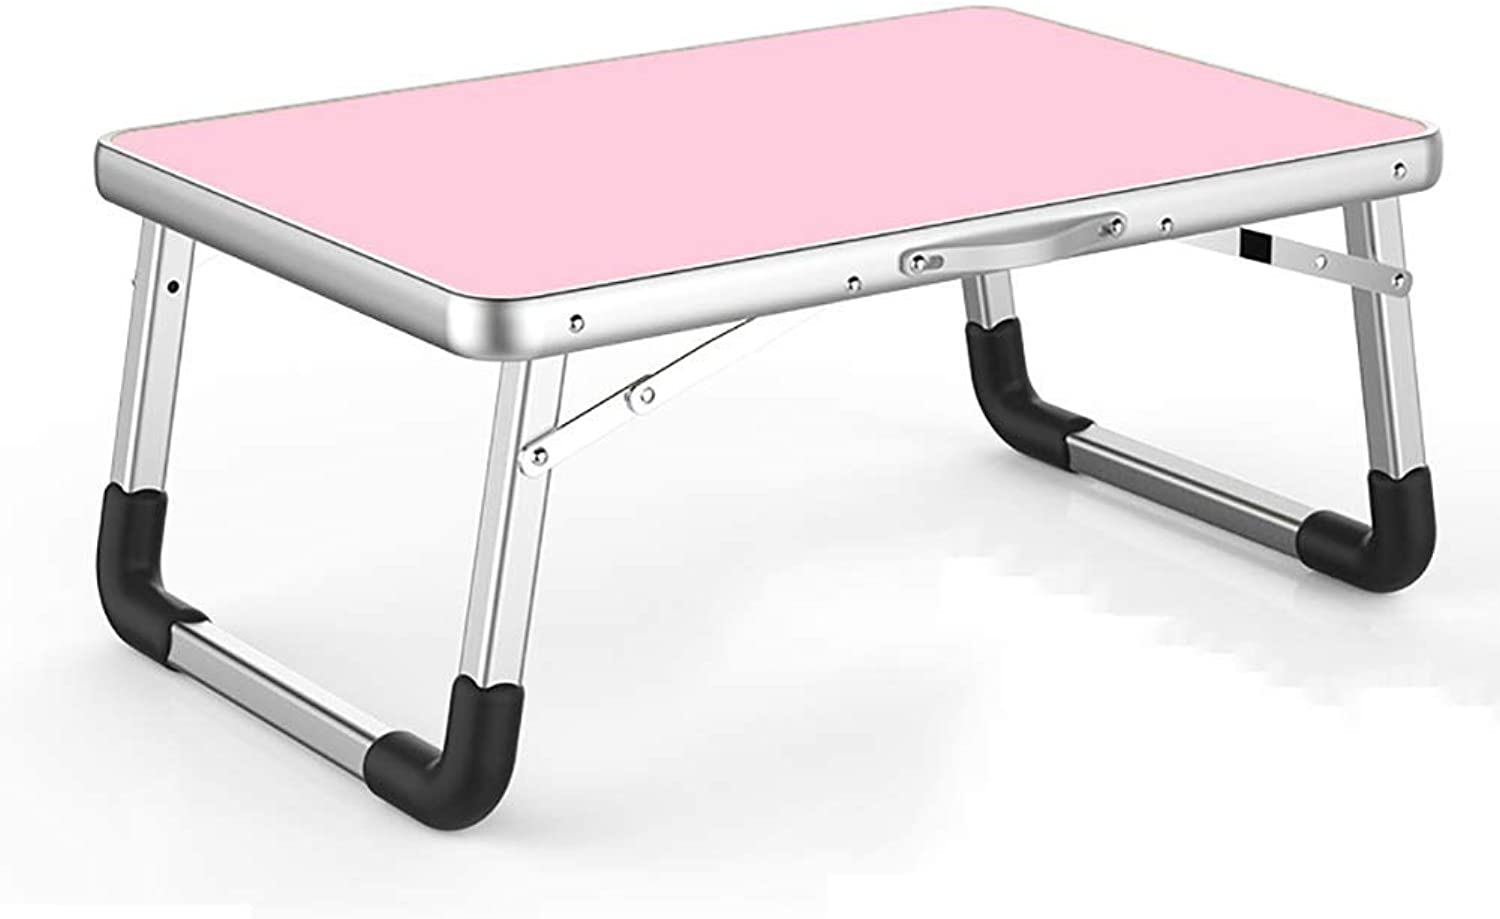 LiTing-Folding Table Laptop Desk Bed with Desk Folding Table Small Table Lazy Table Student Dormitory Study Table (color   Pink)